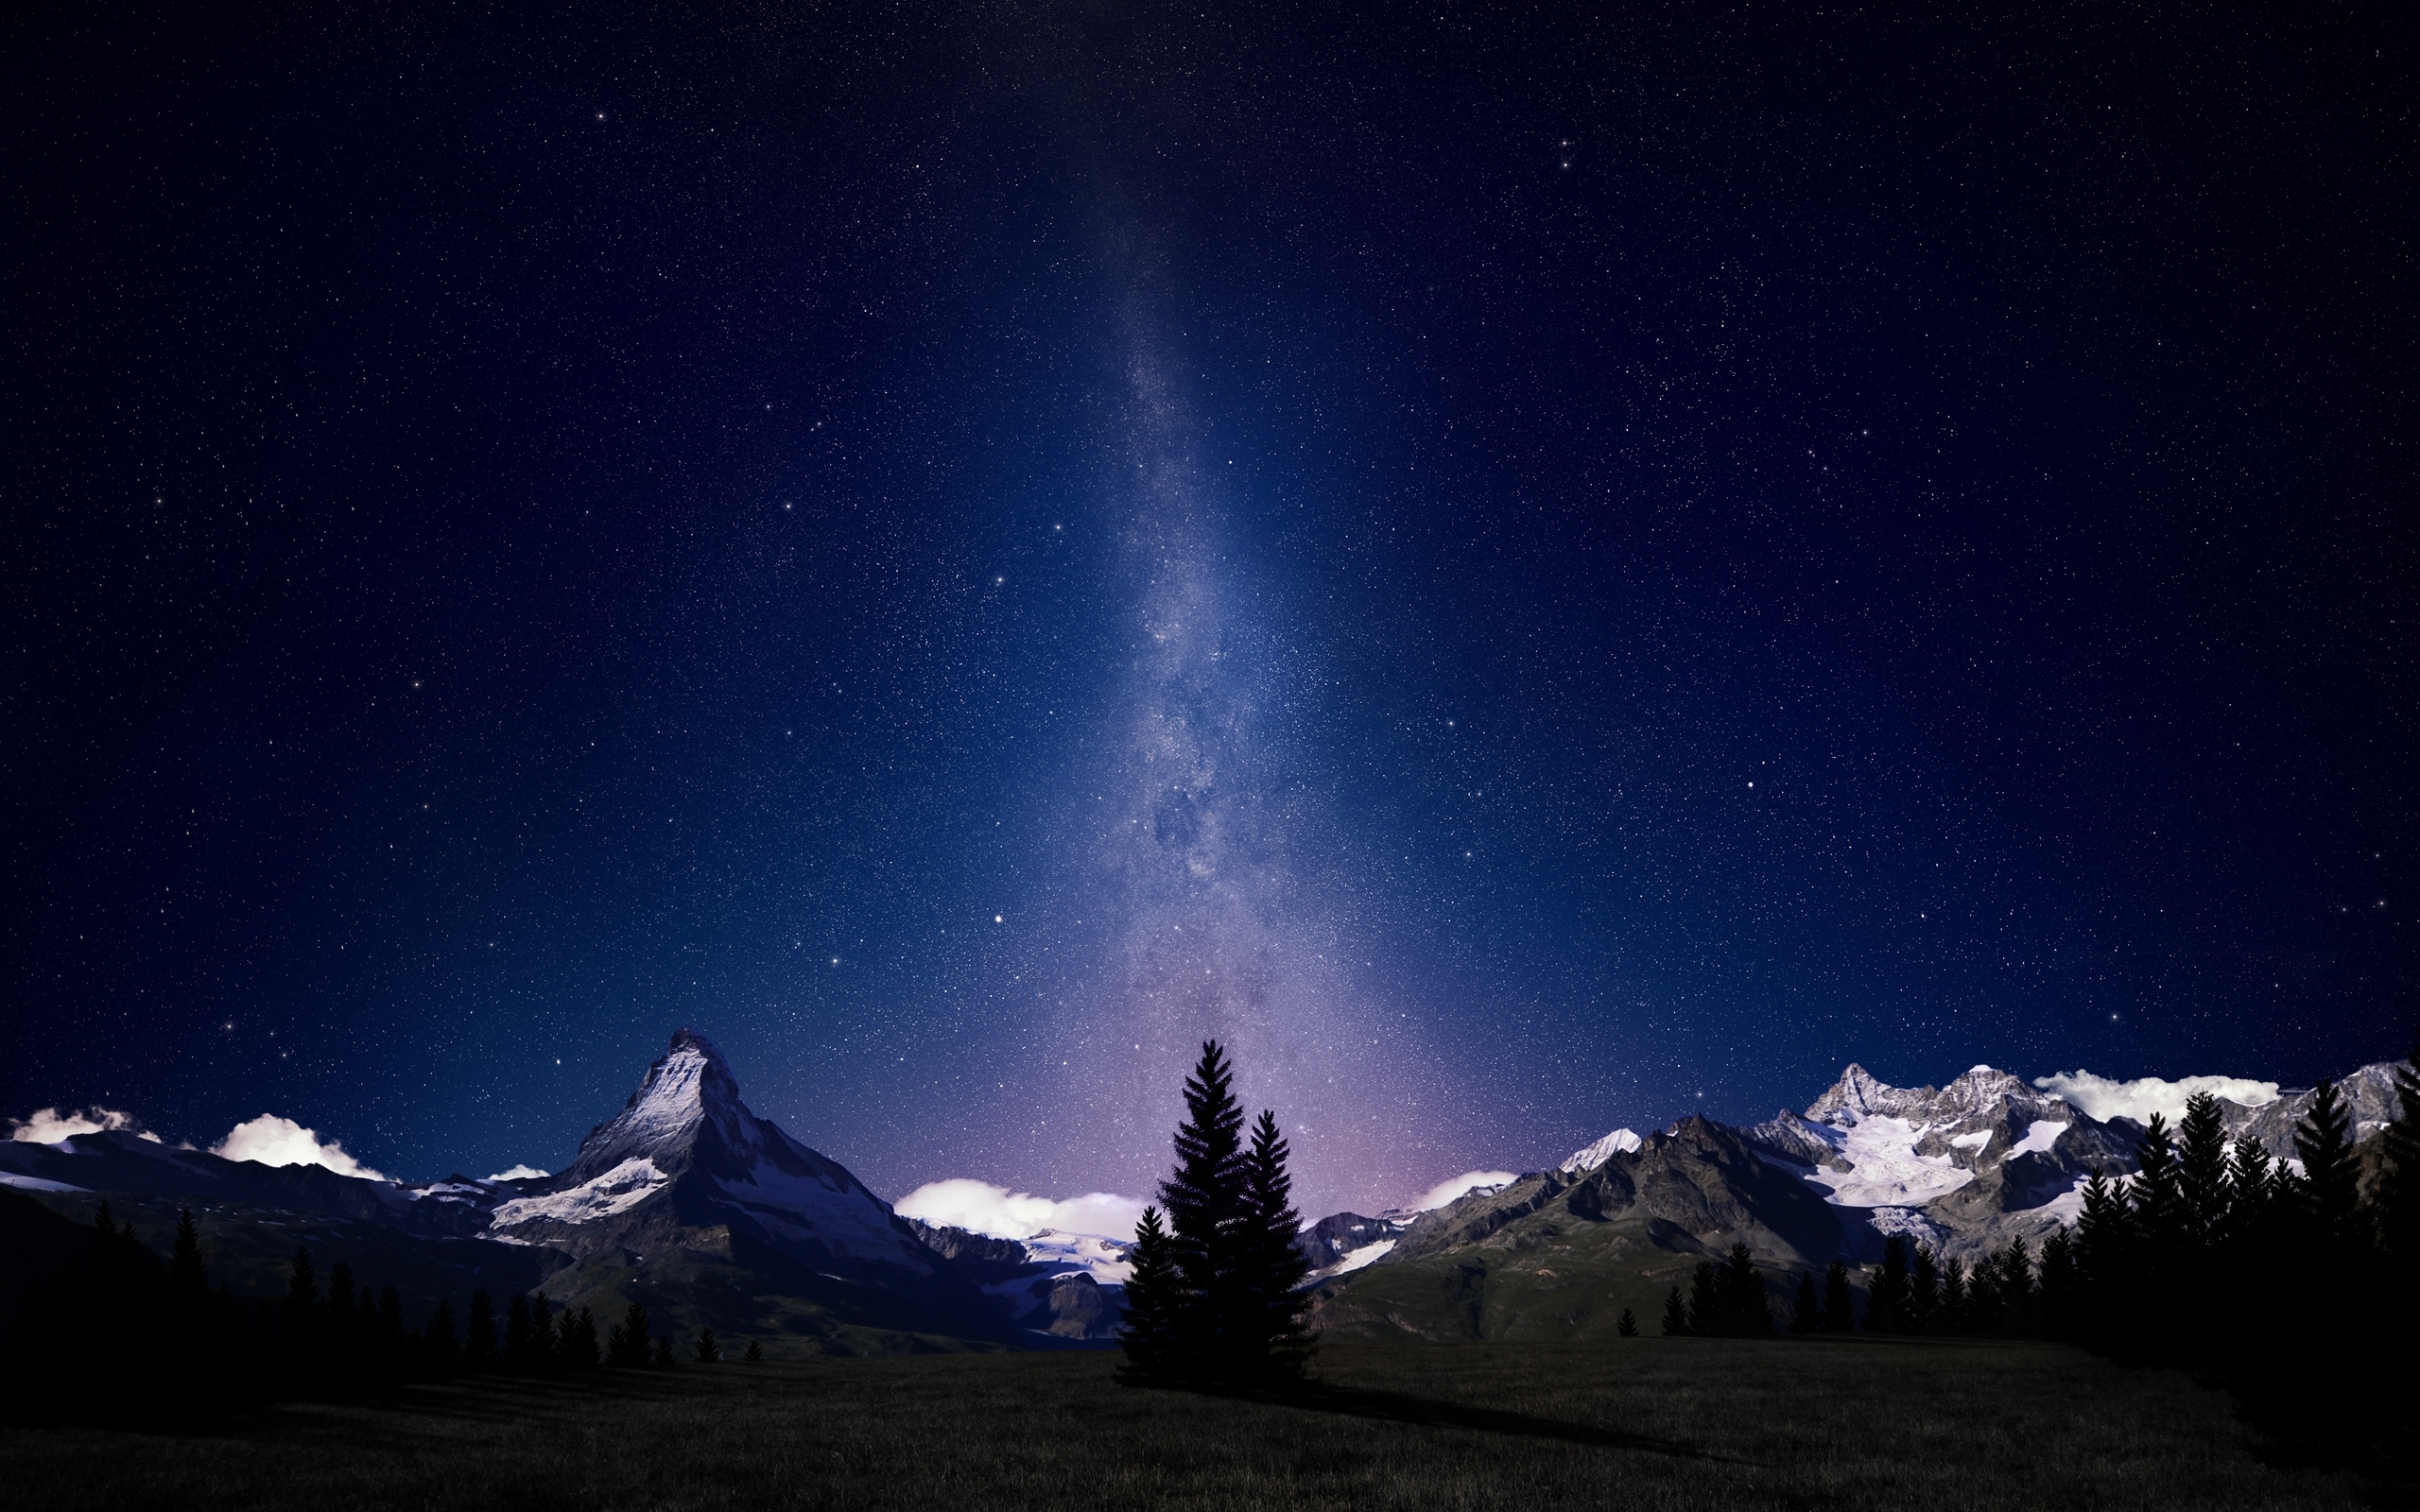 alpine night sky full hd fond d'écran and arrière-plan | 2560x1600